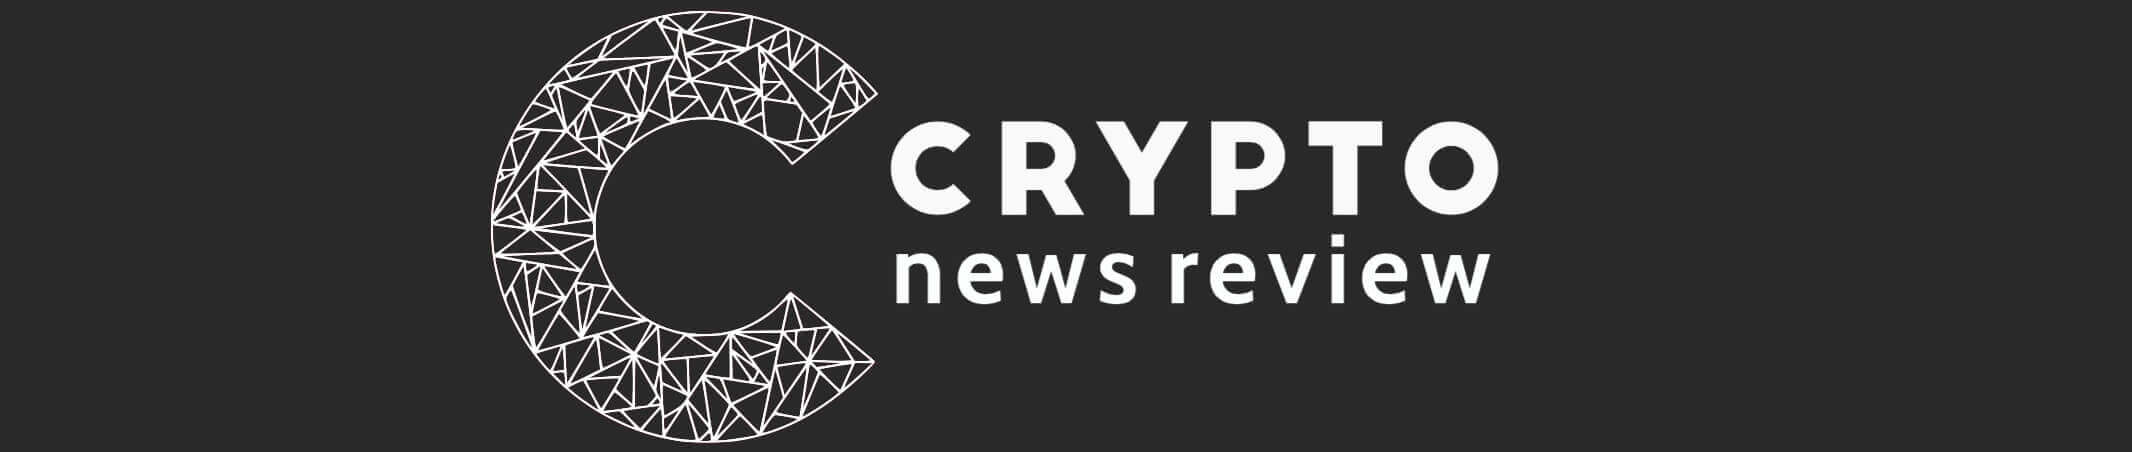 Cryptonewsreview